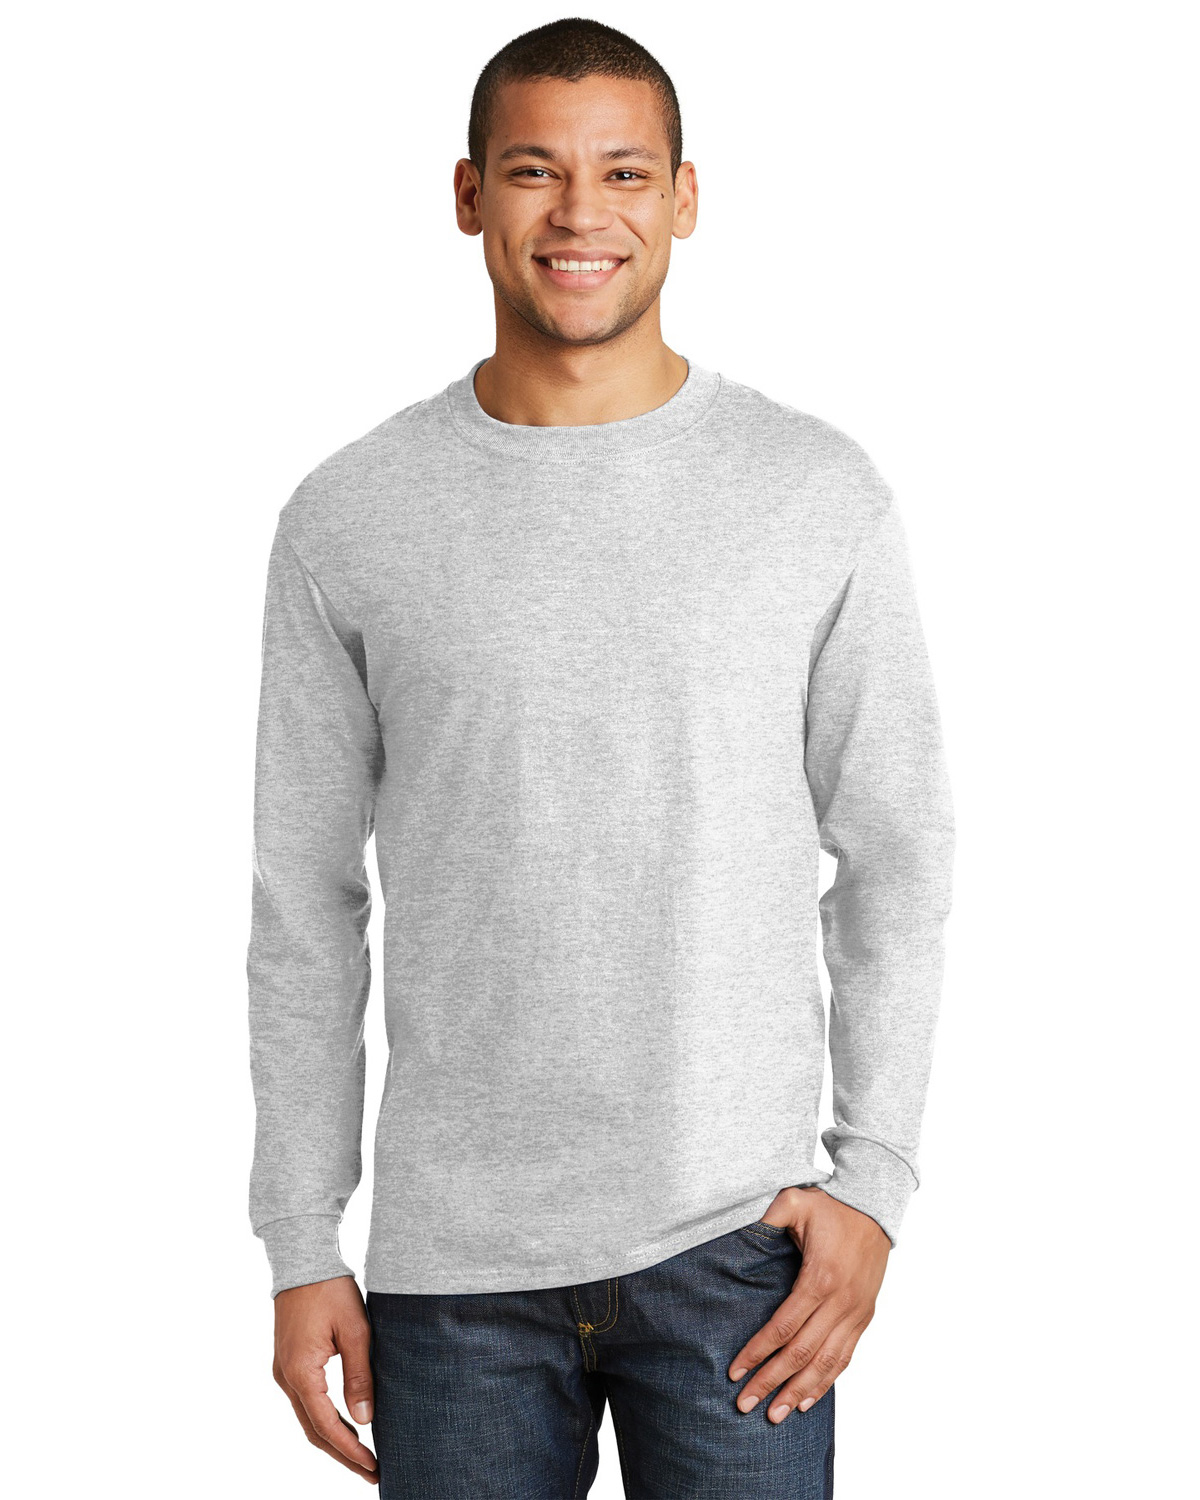 Mens Beefy 100 Cotton Long Sleeve T Shirt At Big And Tall